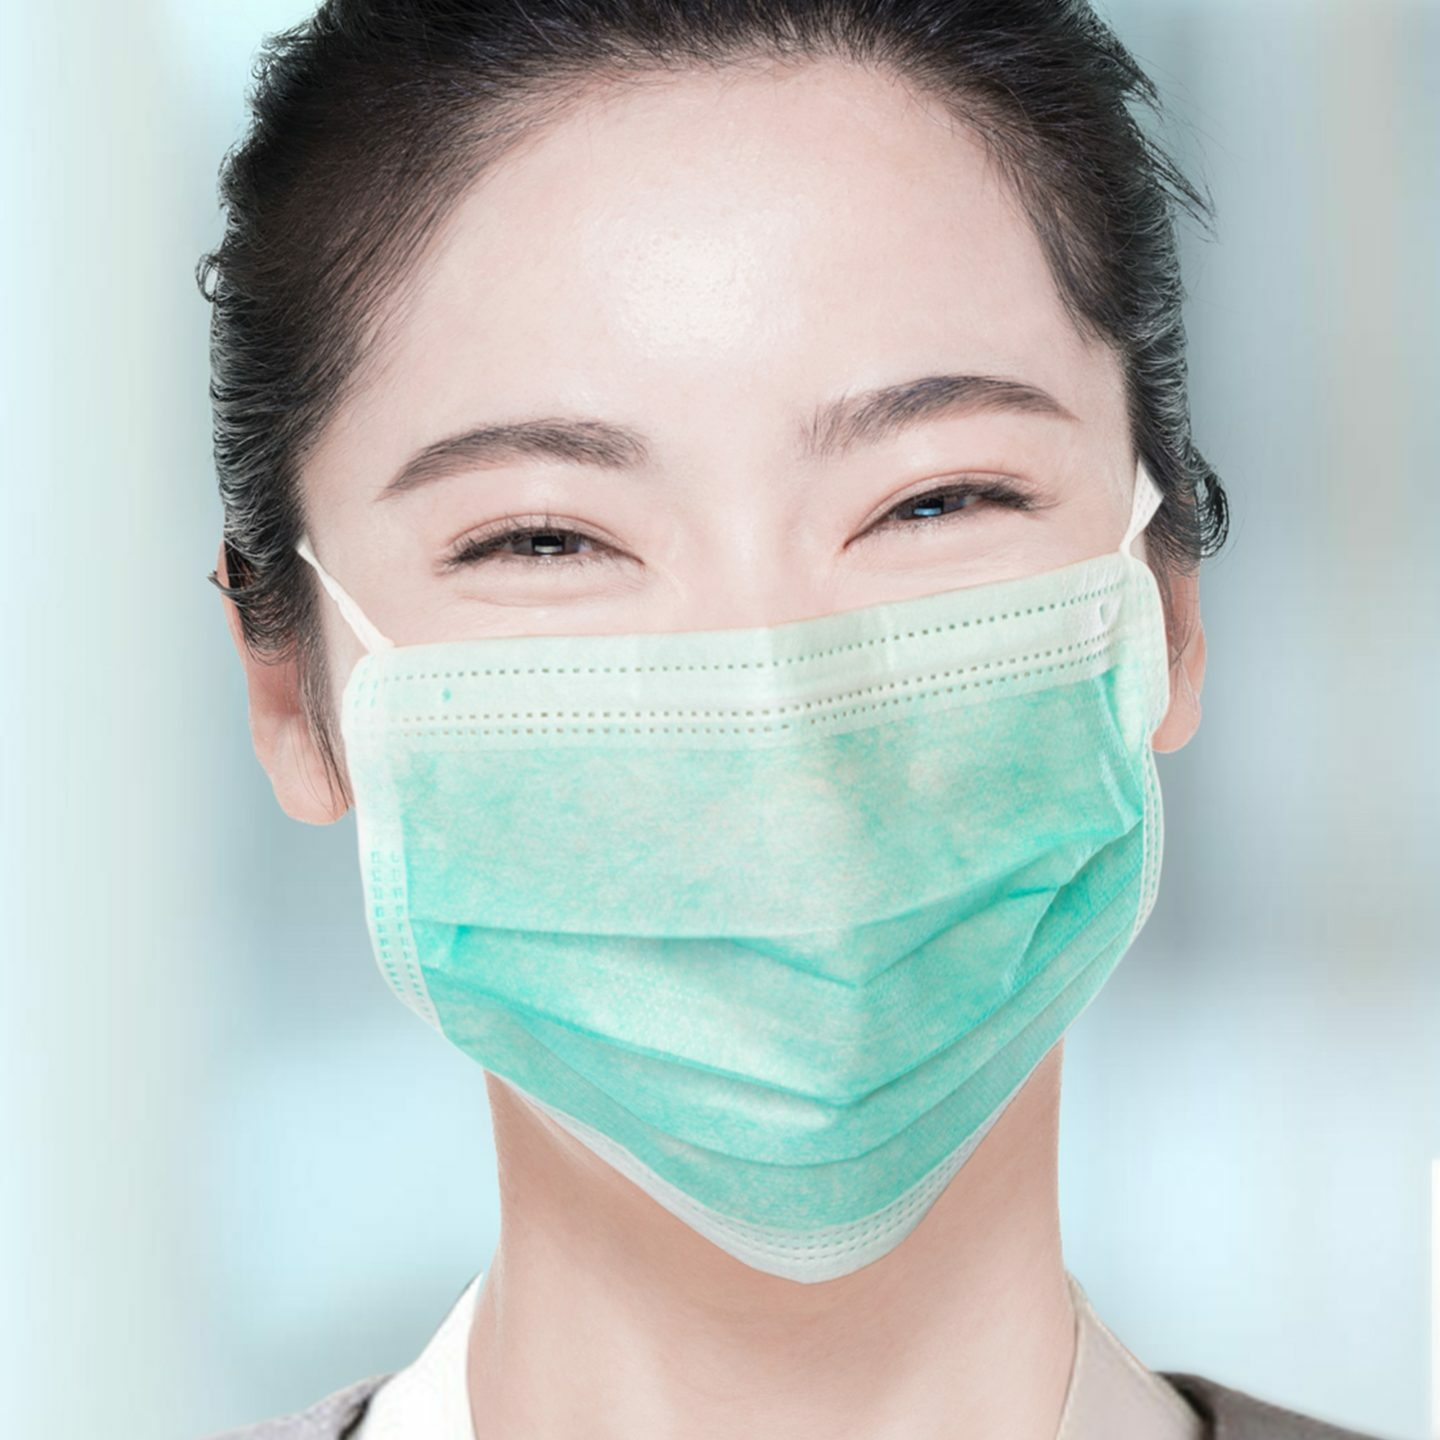 Woman in surgical mask